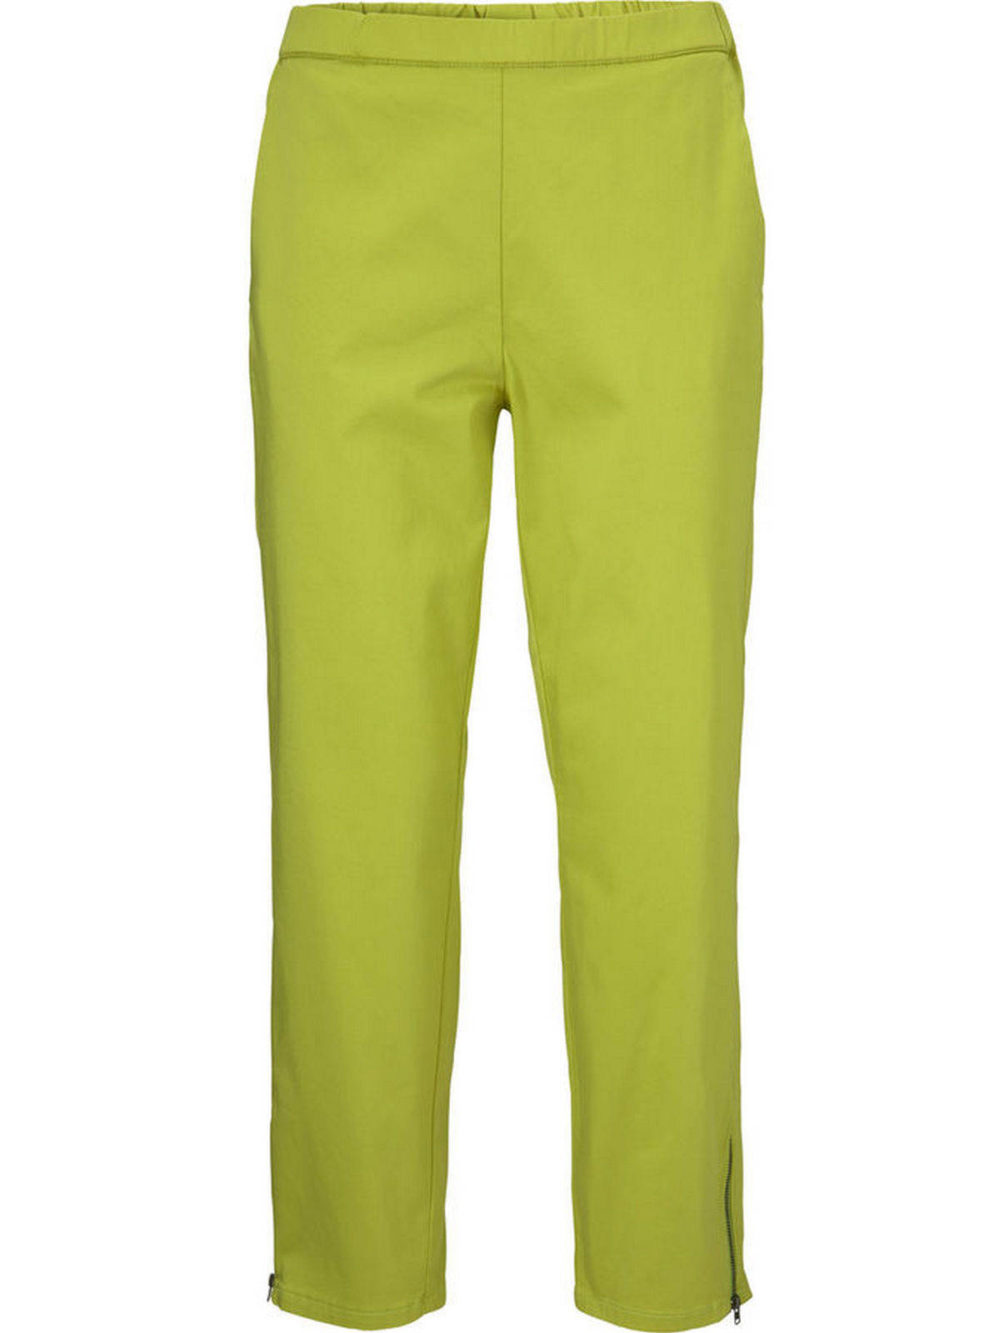 Masai Padme Basic Trousers MA1486